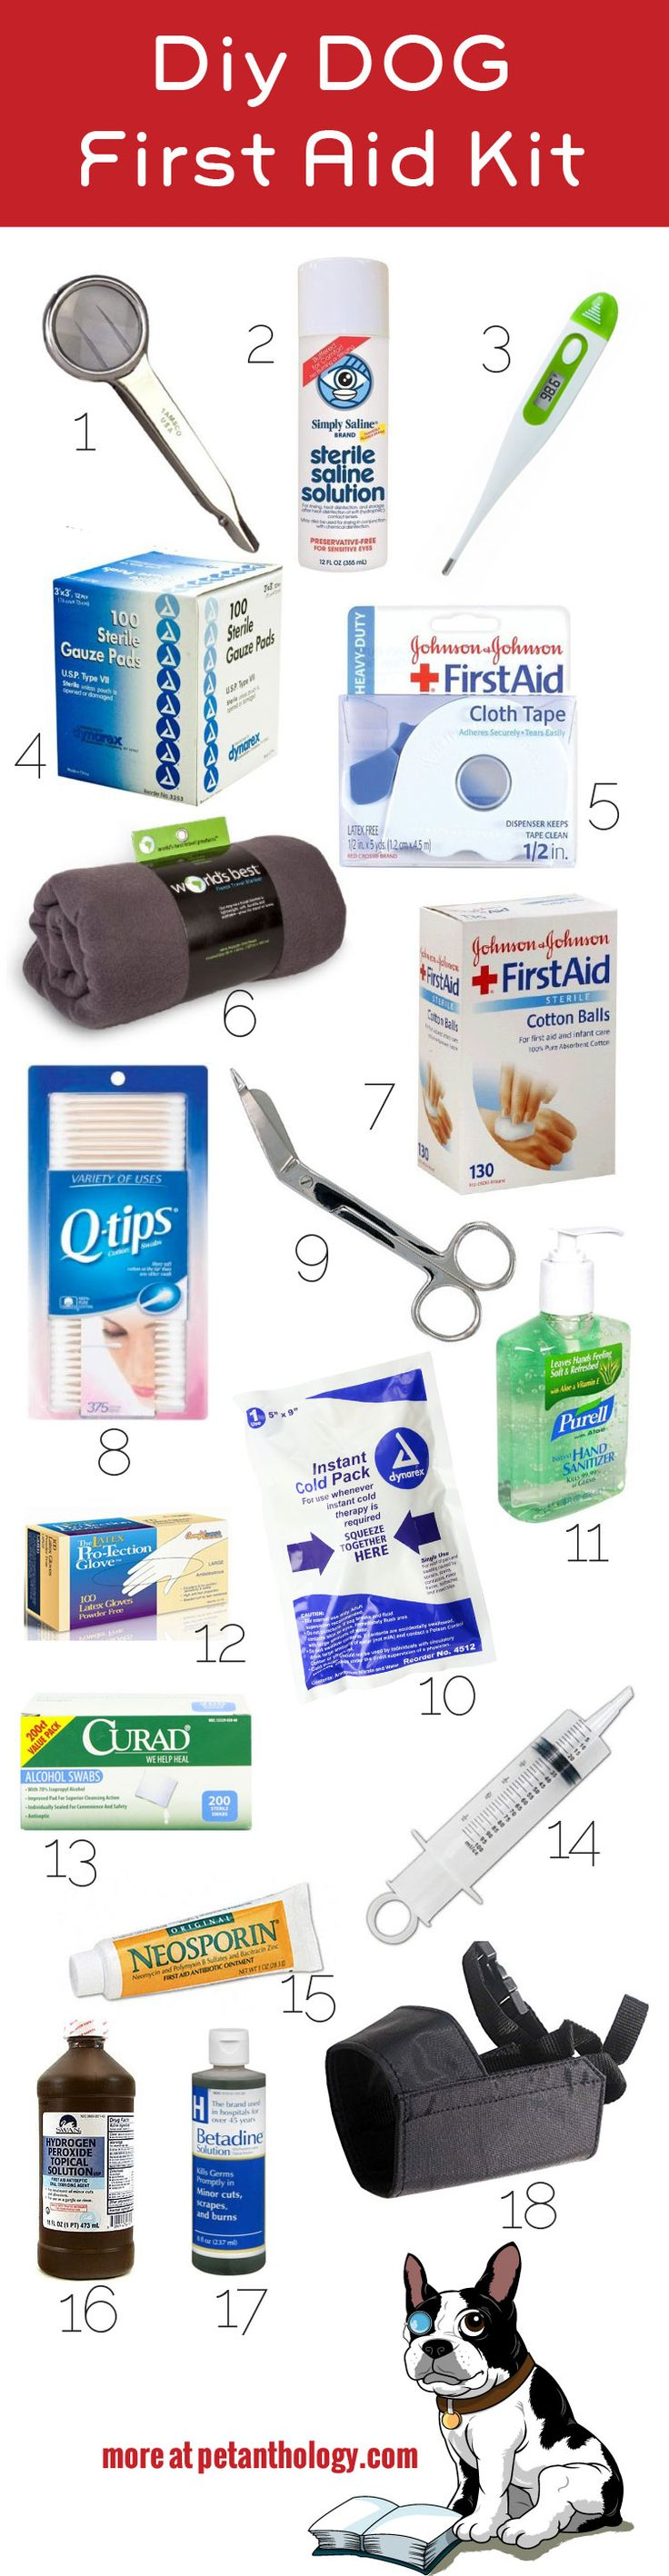 Keep your dog safe in case of an emergency by including these items in your dog first aid kit. #diy